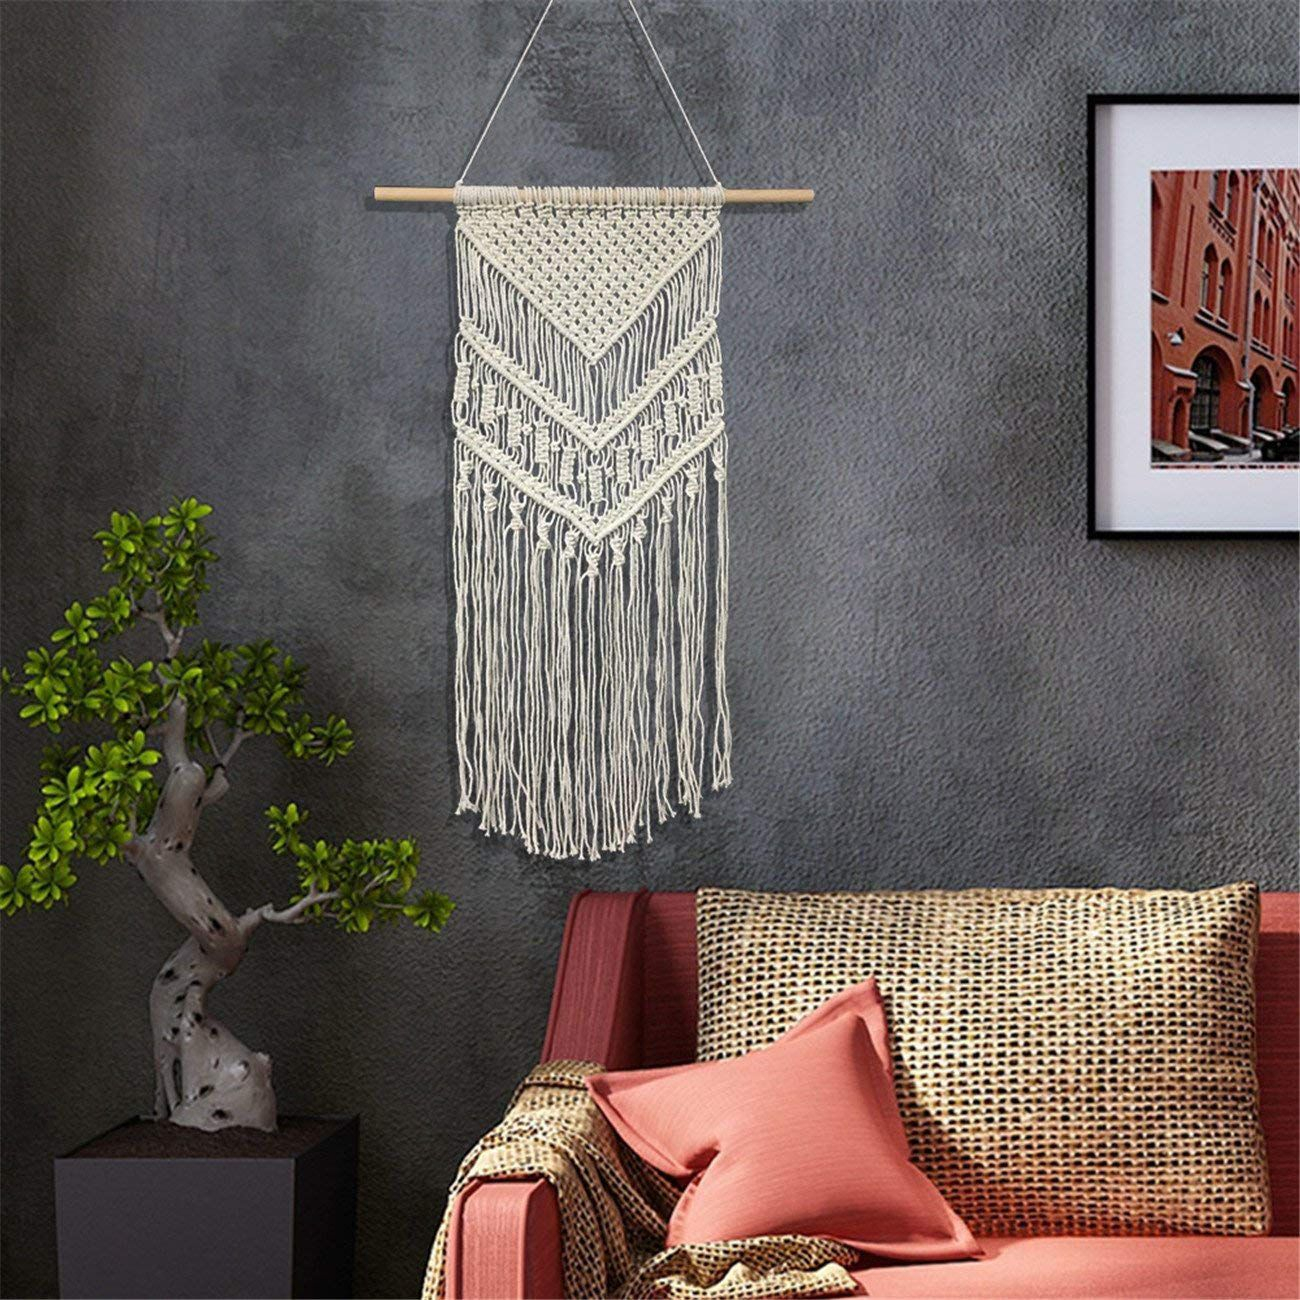 The 7 Best Macrame Wall Hangings With Most Current Blended Fabric Wall Hangings With Hanging Accessories Included (View 16 of 20)